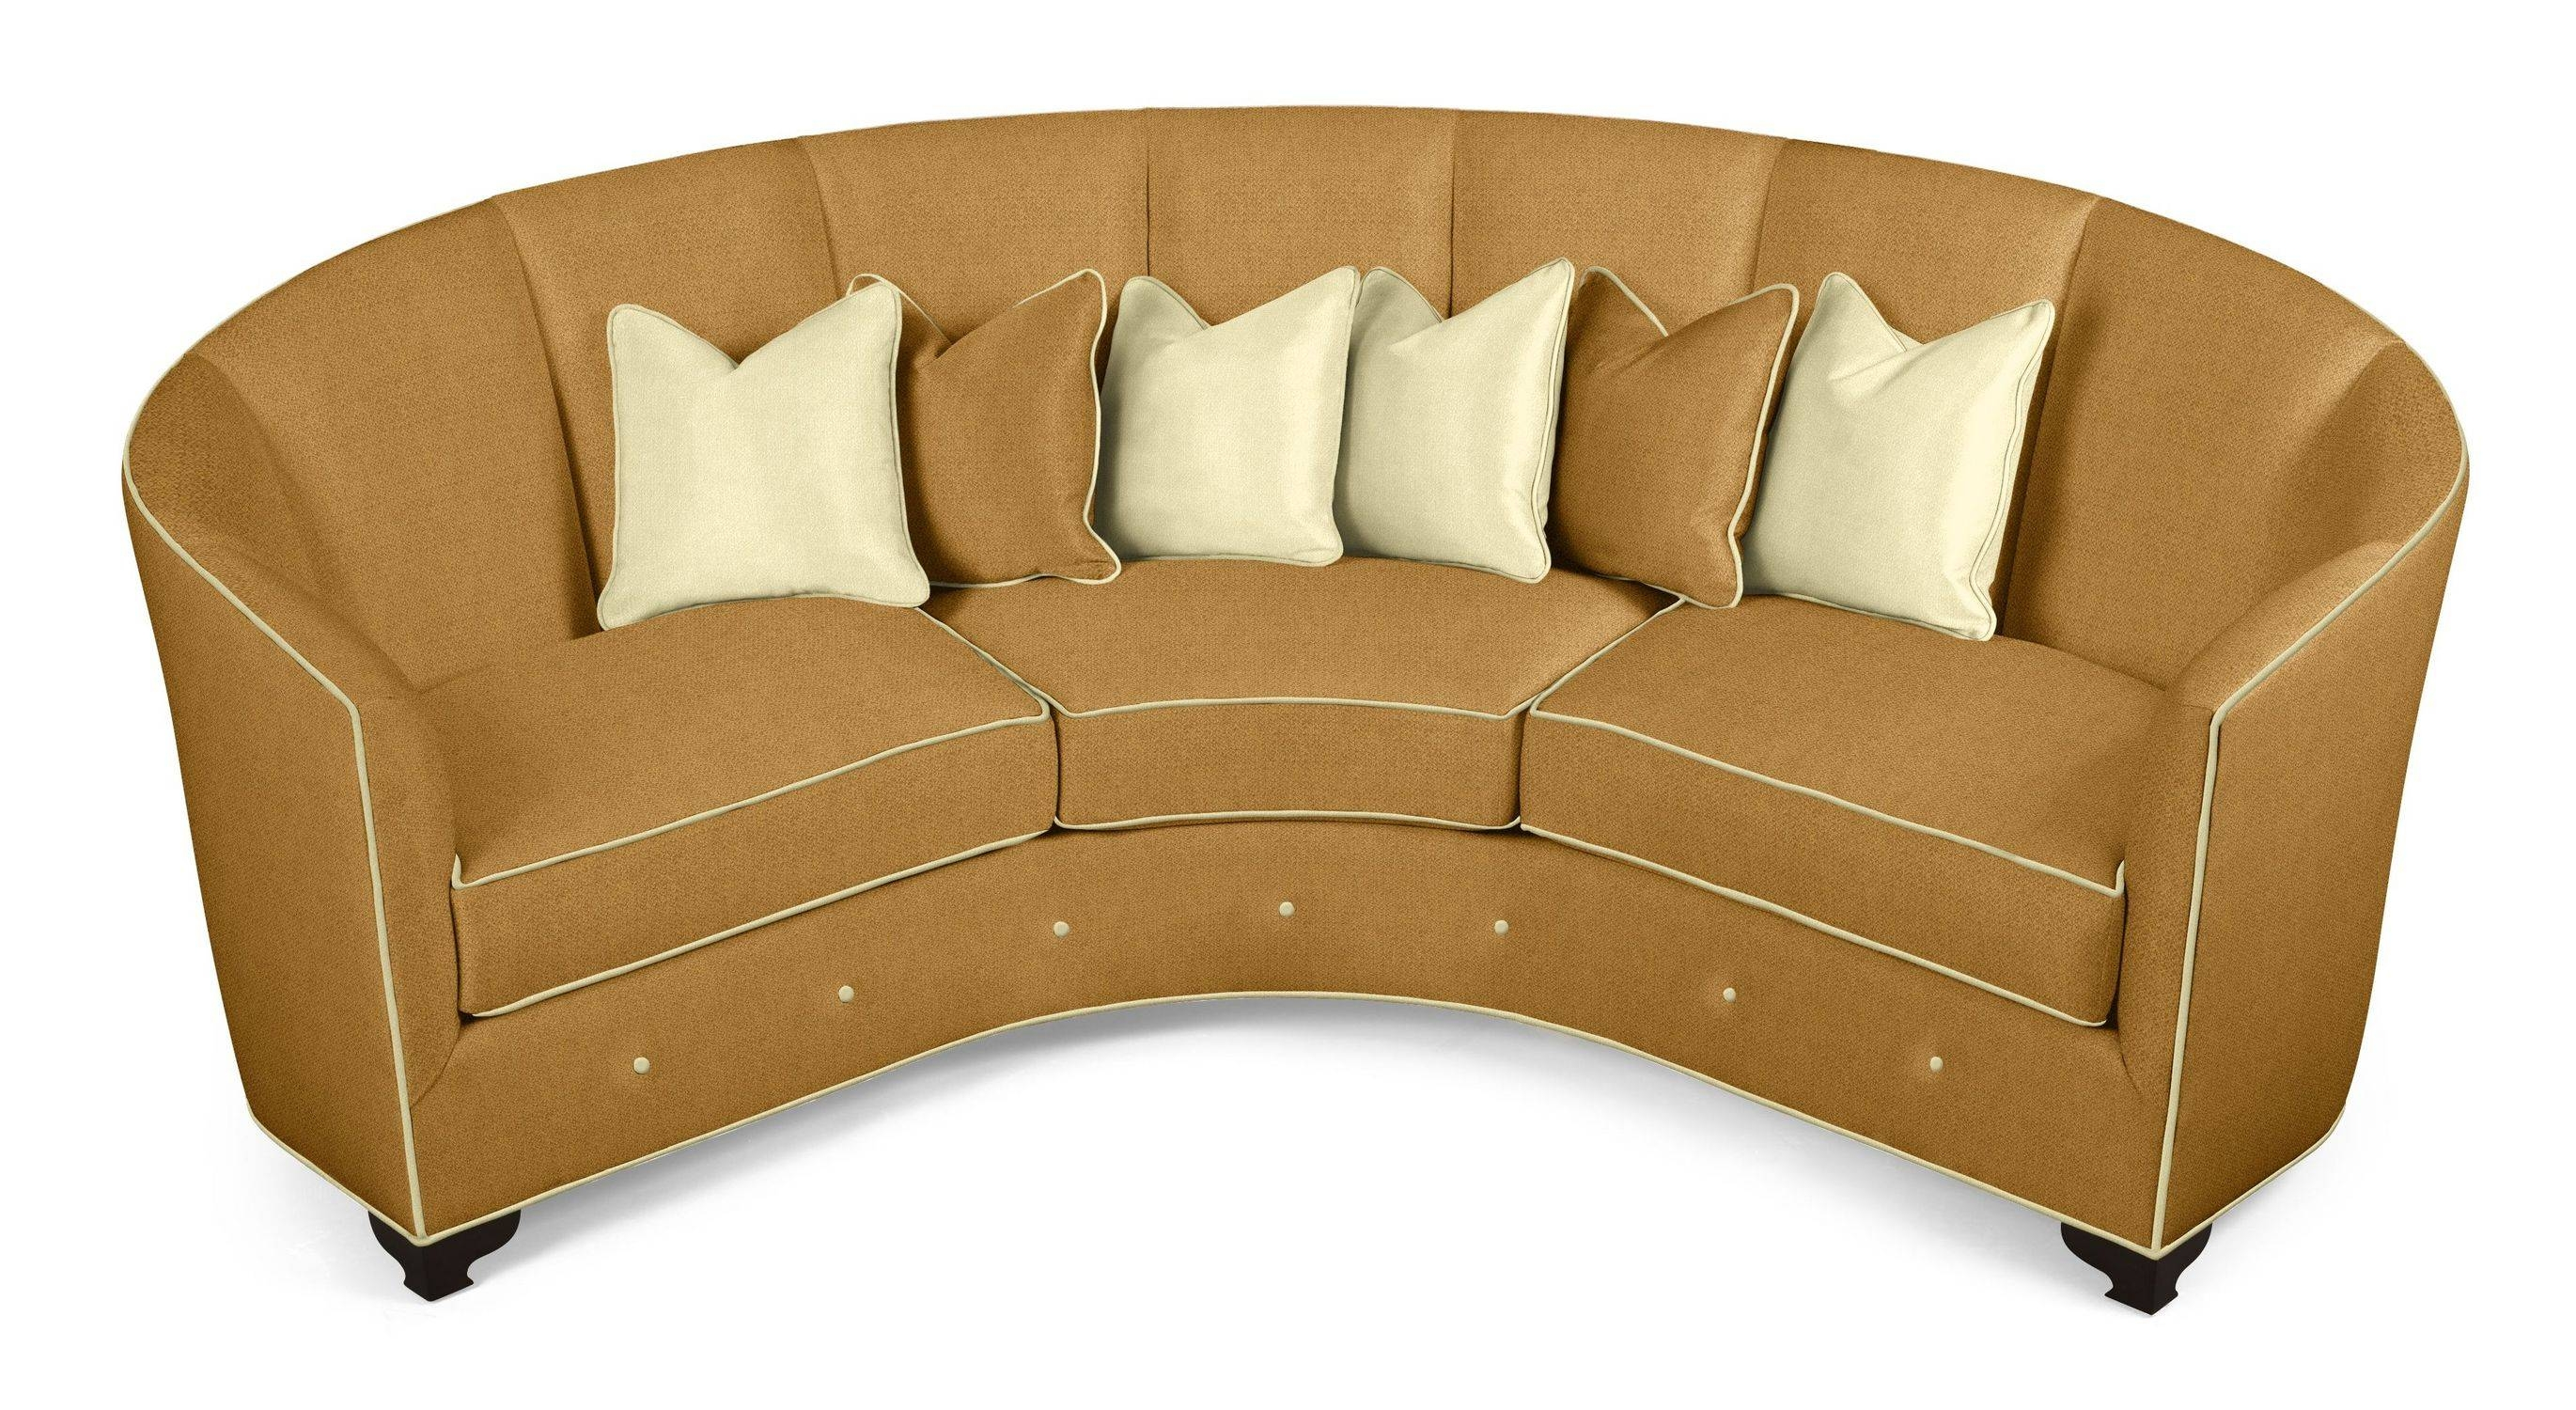 Furniture: Couch Sectional | Sofa With Chaise Lounge | Round Couches pertaining to Round Sofas (Image 8 of 30)